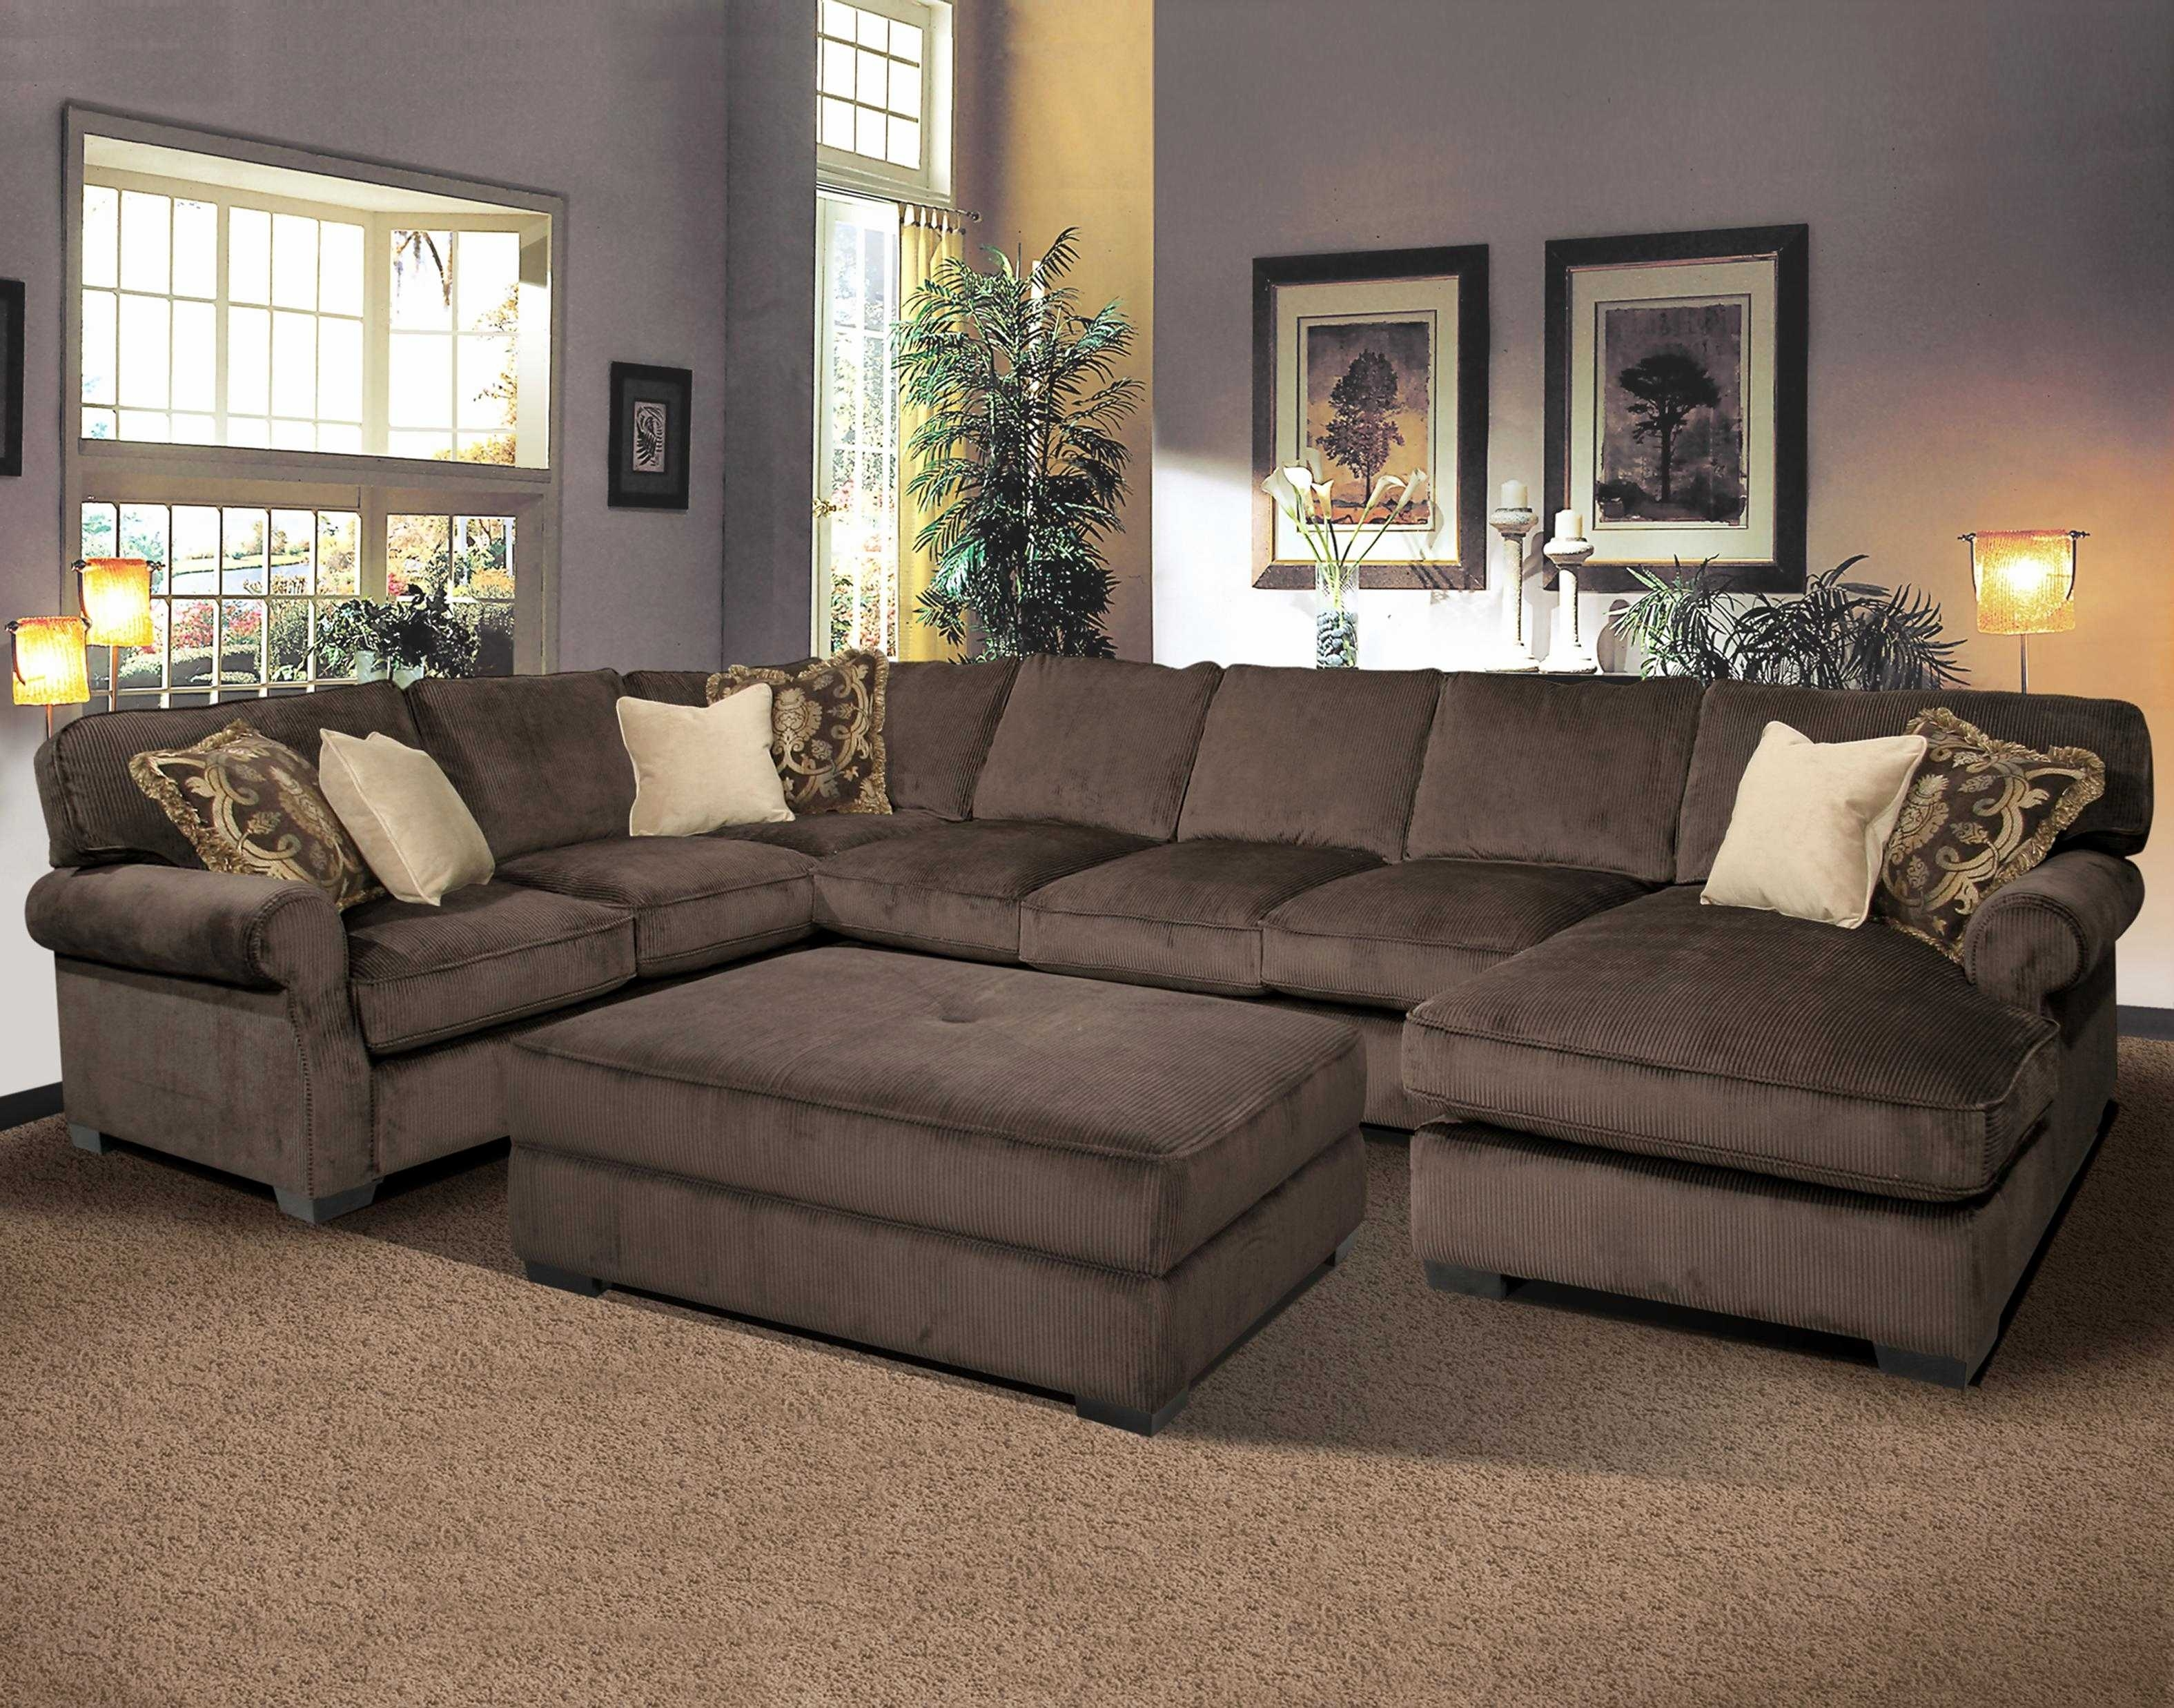 Unique Extra Wide Couch Inspirations And Stunning Sectional Sofa Regarding Wide Sectional Sofas (View 1 of 10)